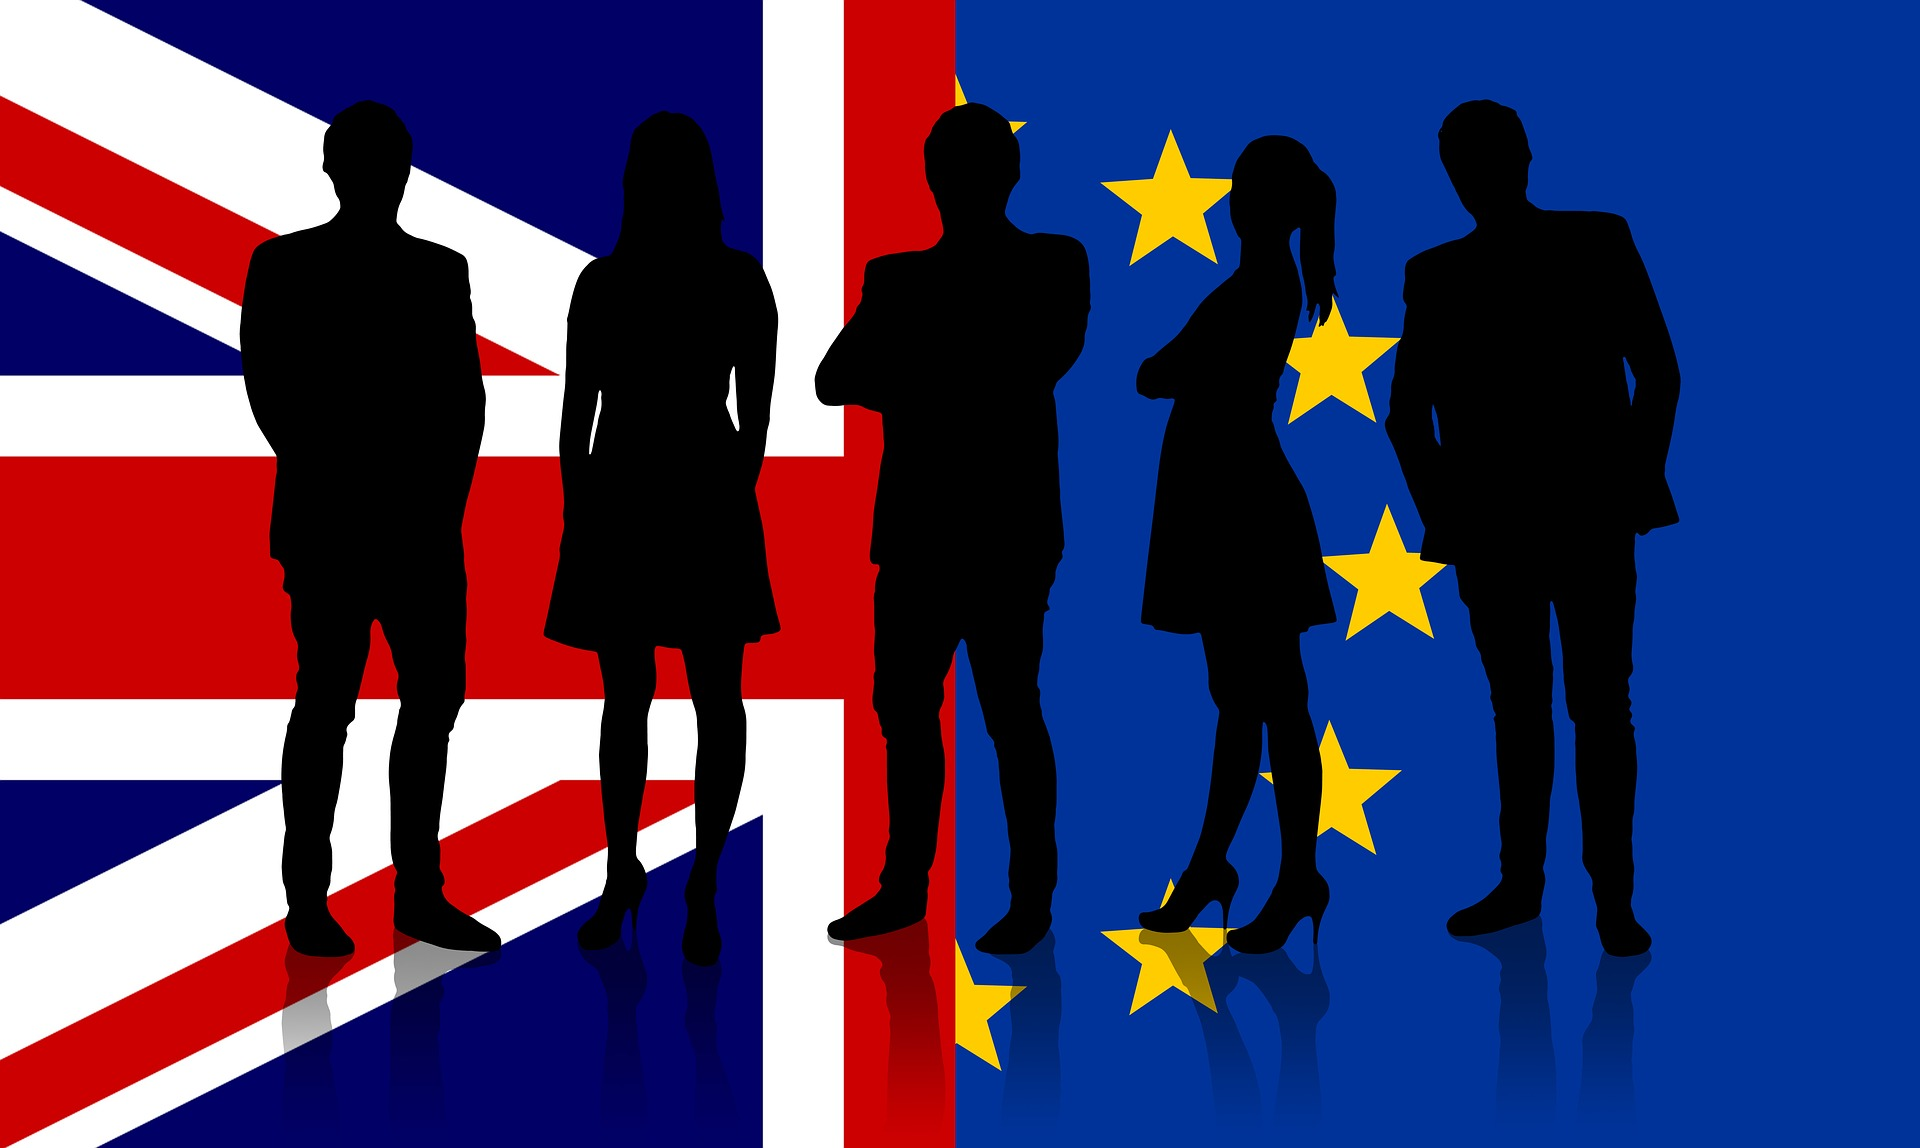 Can Brexit be explained by the theory of Collective Narcissism?